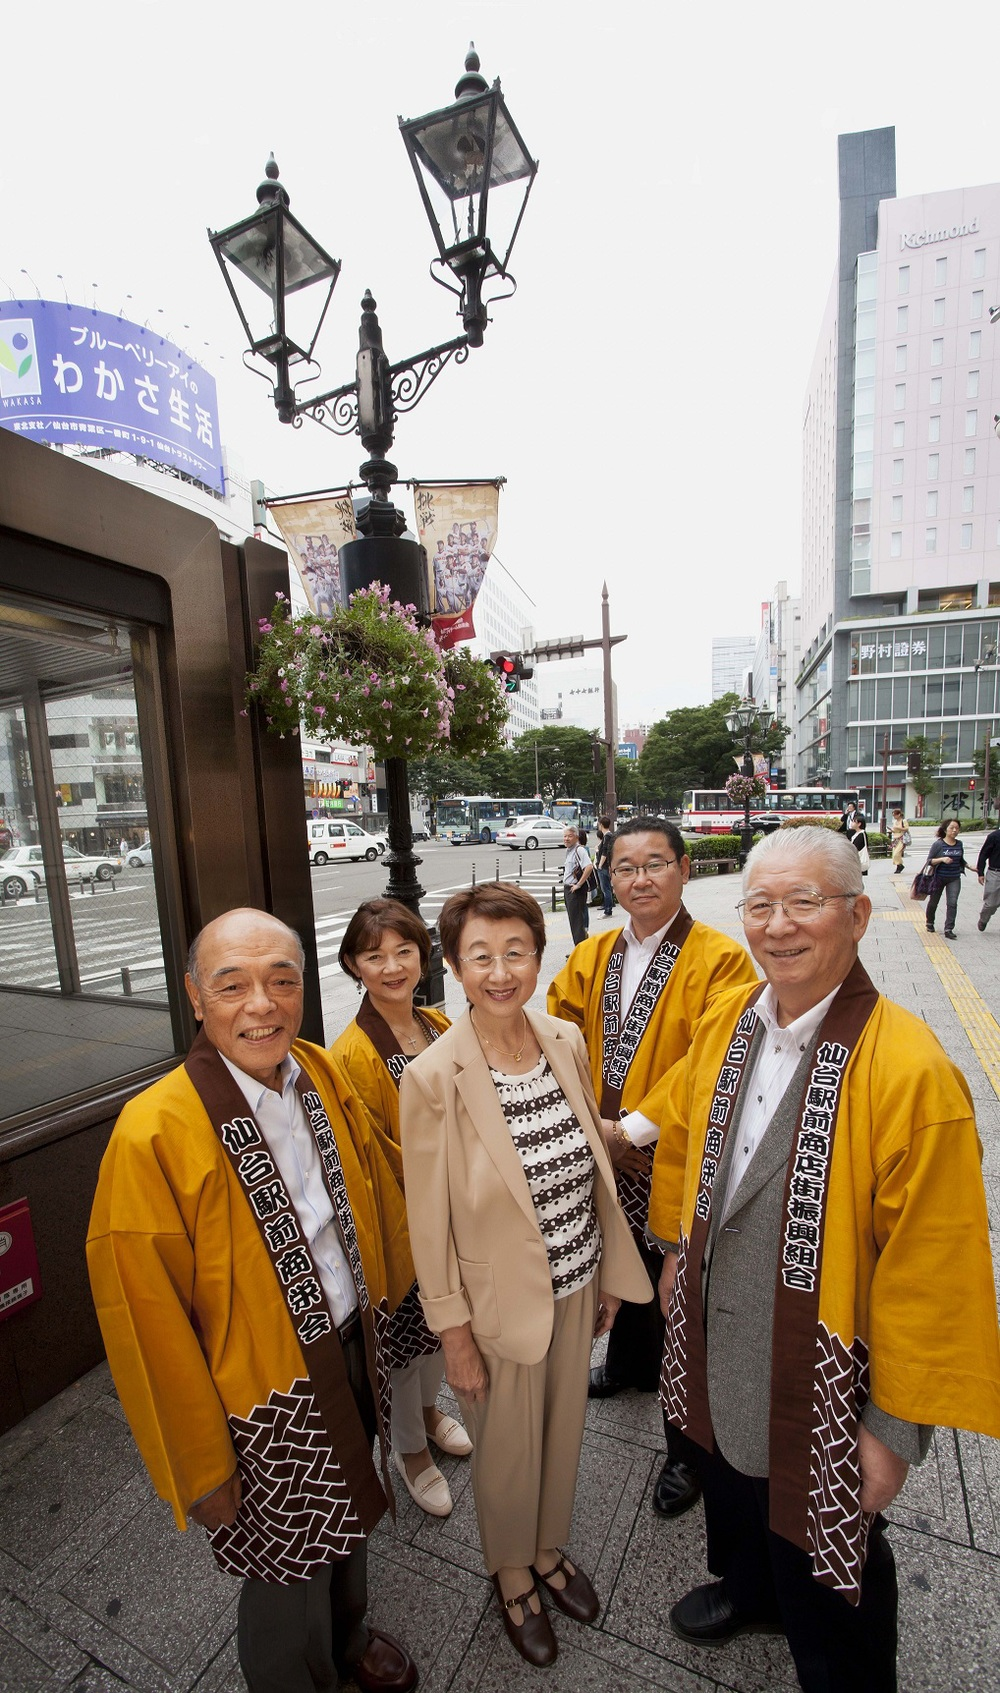 Centre of the front row is Sendai city's Mayor, Emiko Okuyama.The executives of the Sendai Station Square Mall Promotion Association are Mr Osamu Yokoyama (front left), Ms Noriko Yoshida (back left), Mr Koichi Tanaka (back right), and Mr Takuro Katsuyama (front right).